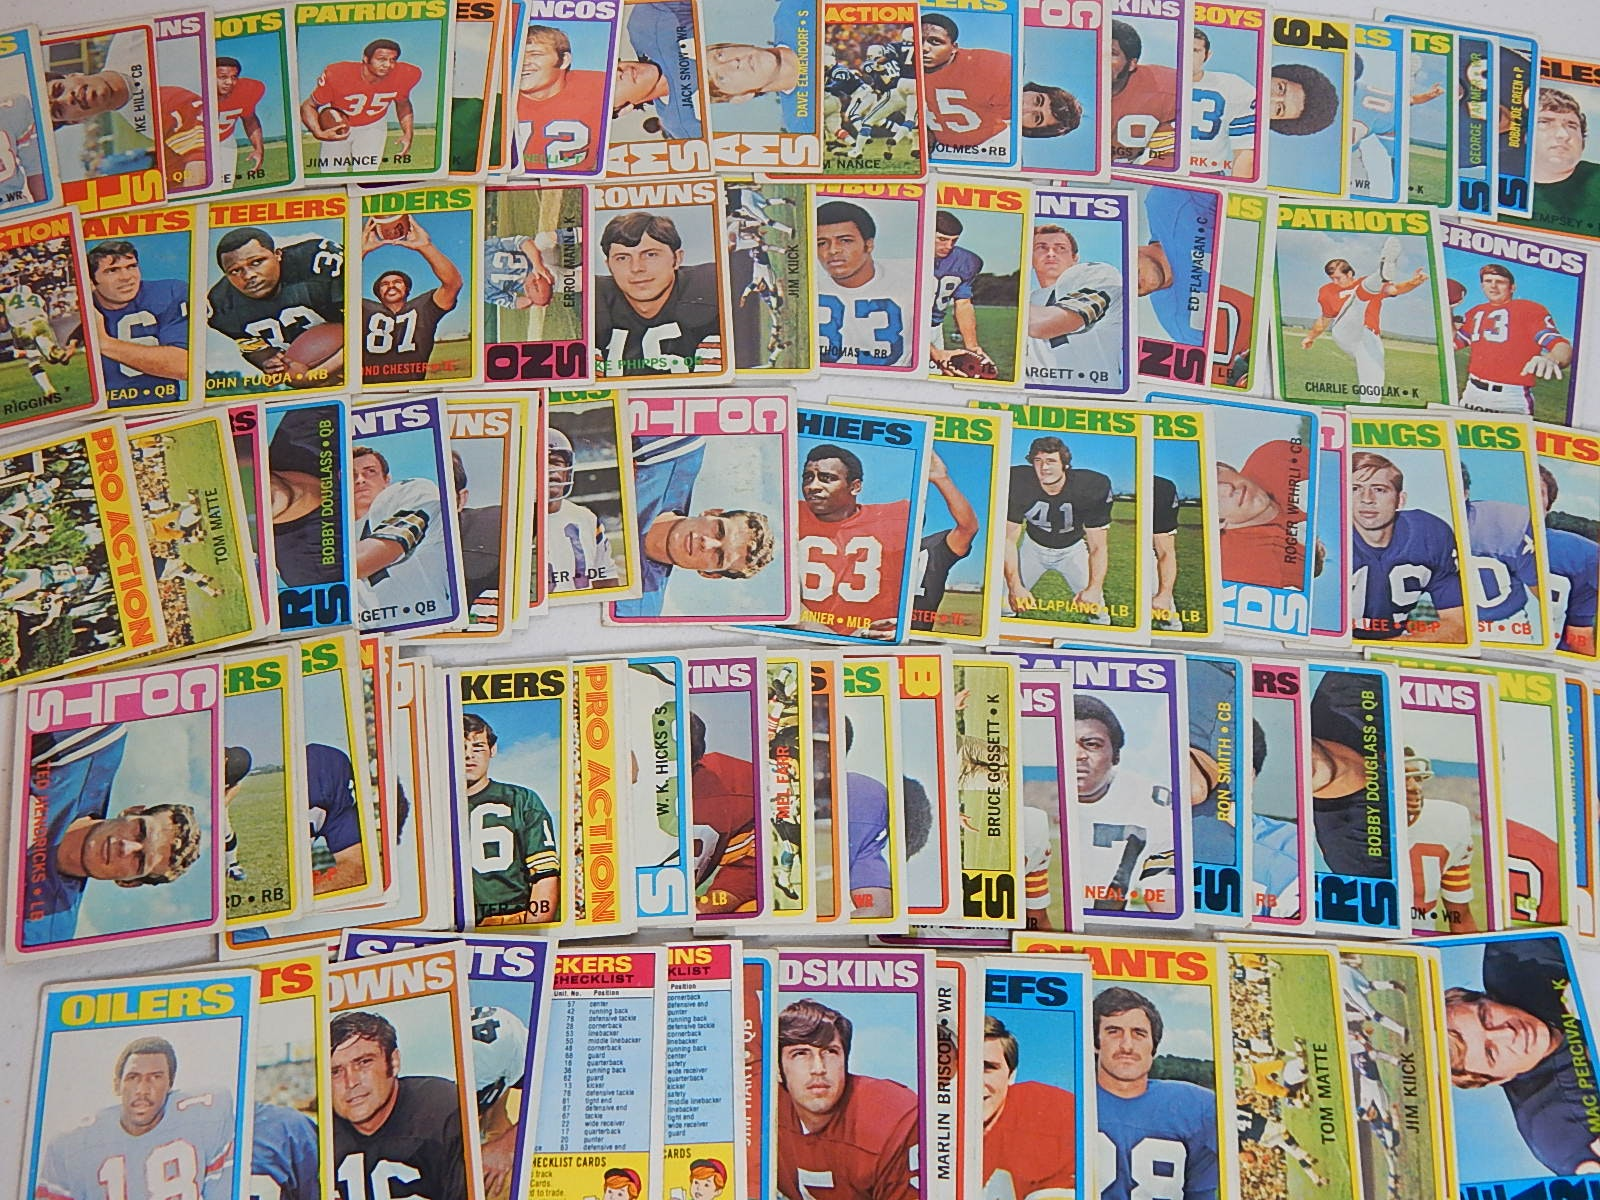 1972 Topps Football Card Collection - Over 100 Card Count